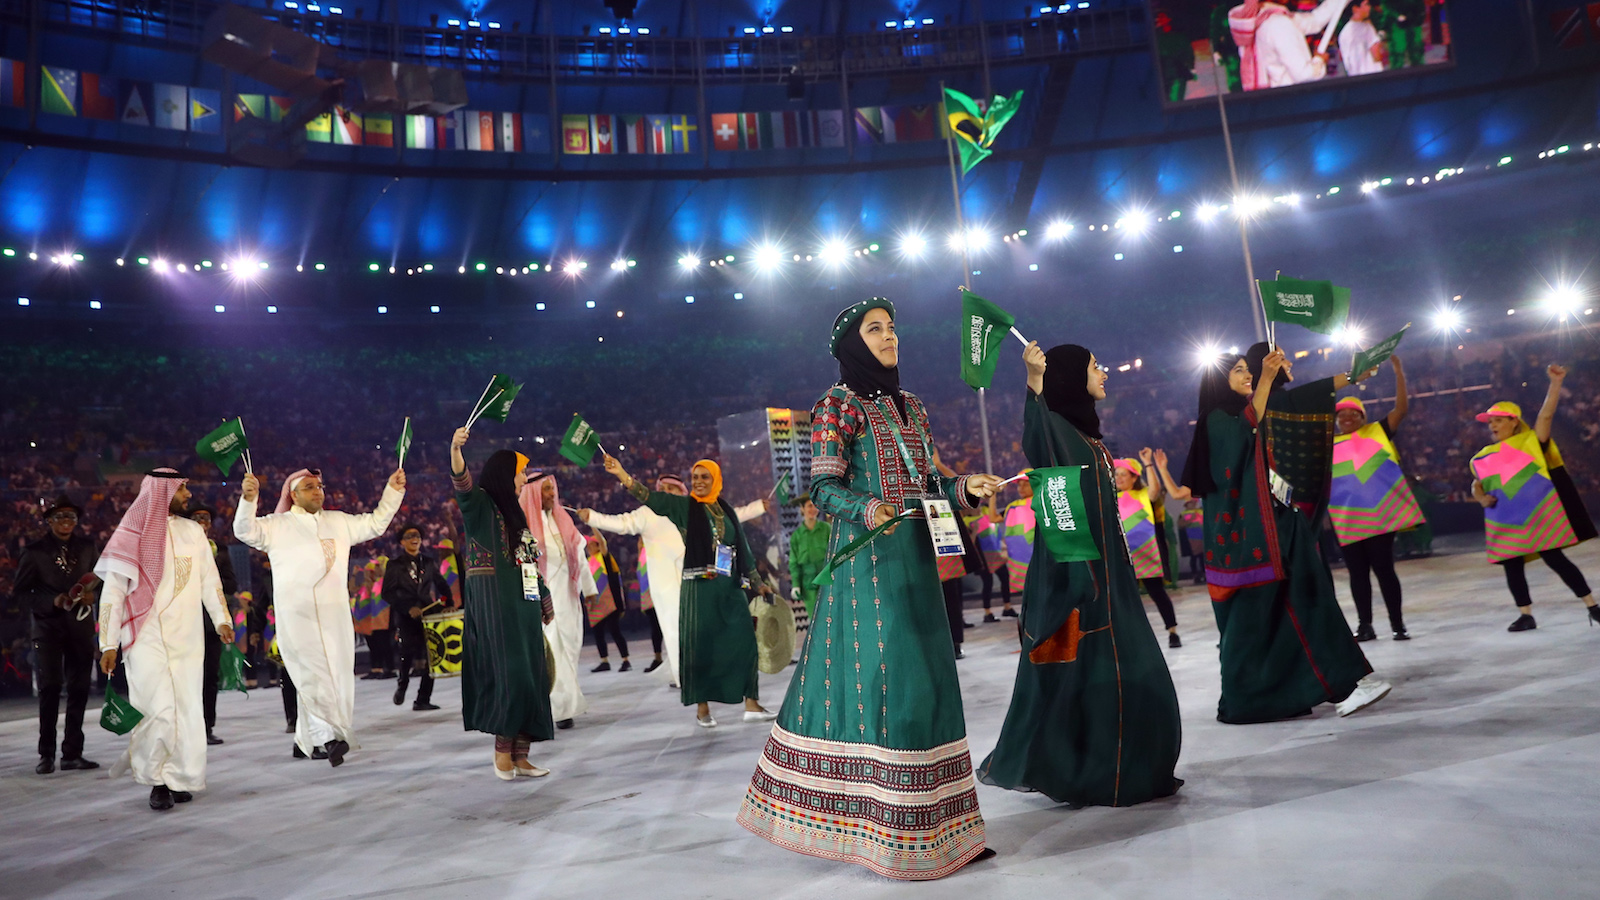 Four women and nine men are representing Saudi Arabia at the 2016 Rio Olympics.